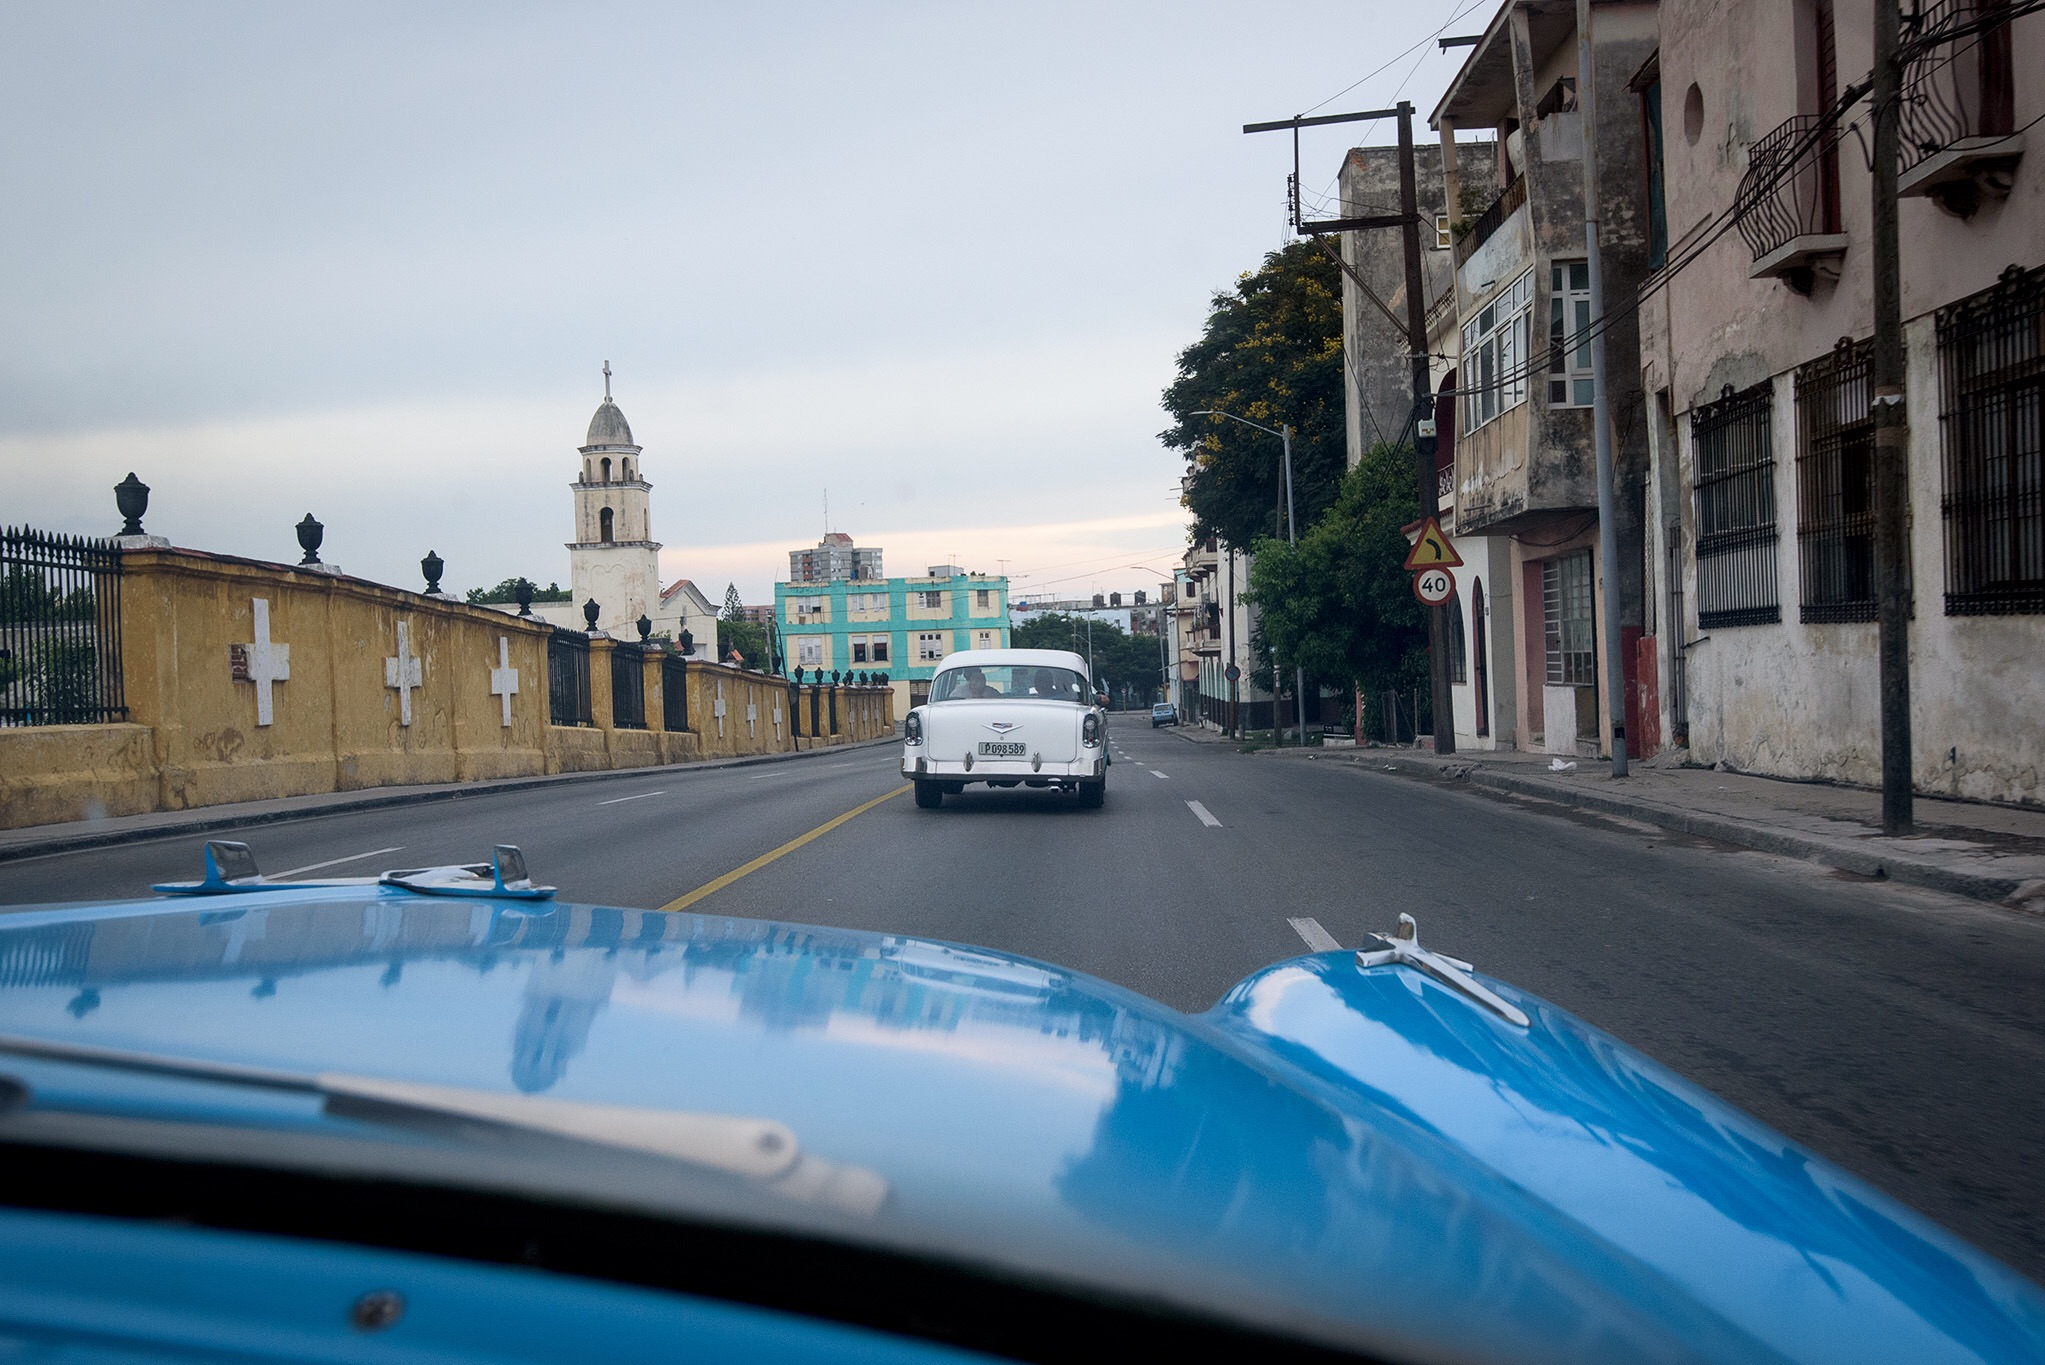 Riding in a car built before my time was a thrilling way to see the city of Havana.